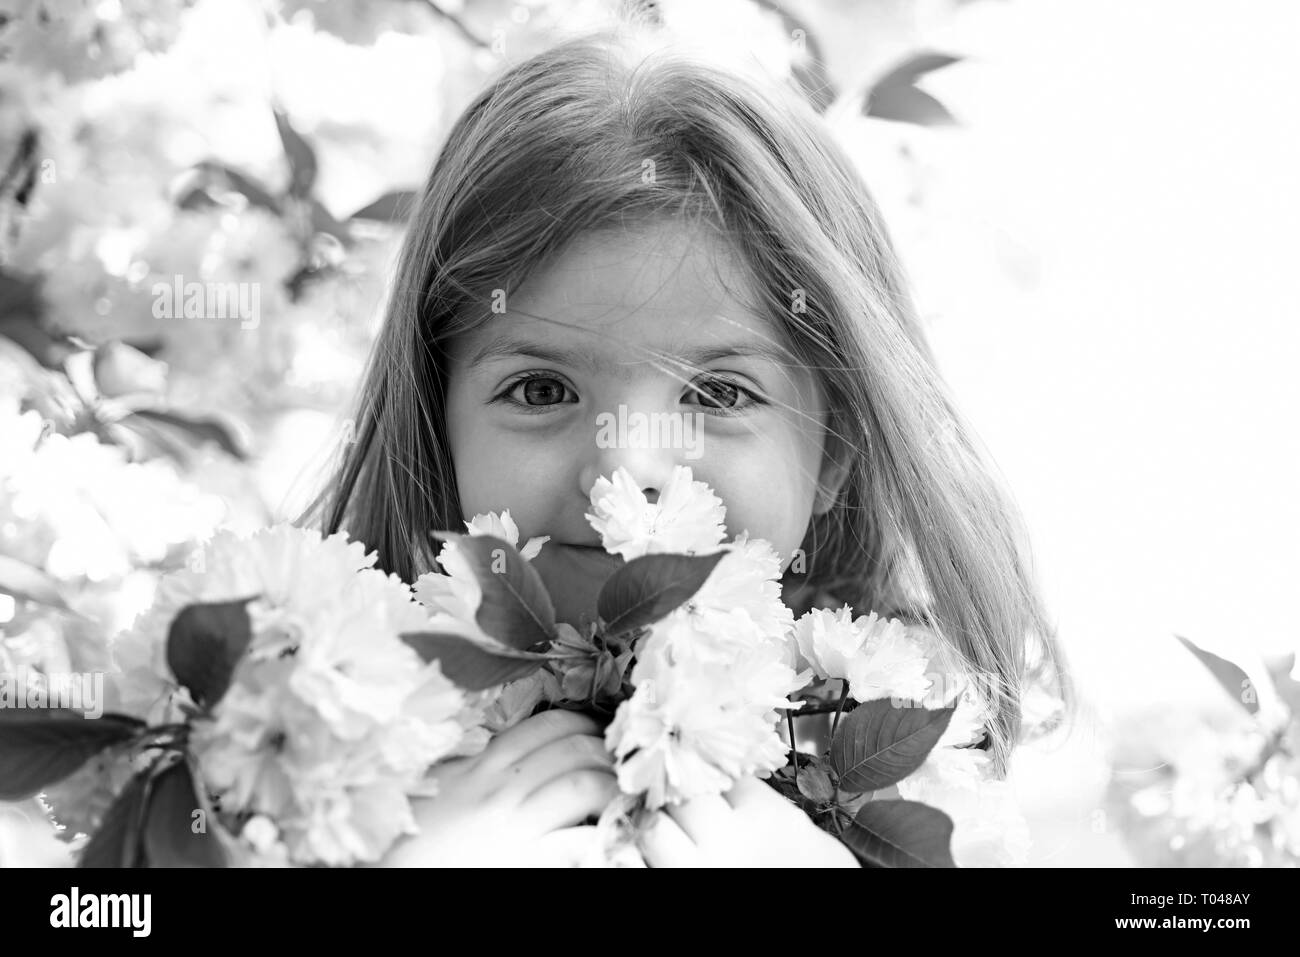 Springtime. weather forecast. Little girl in sunny spring. face and skincare. allergy to flowers. Summer girl fashion. Happy childhood. Small child - Stock Image